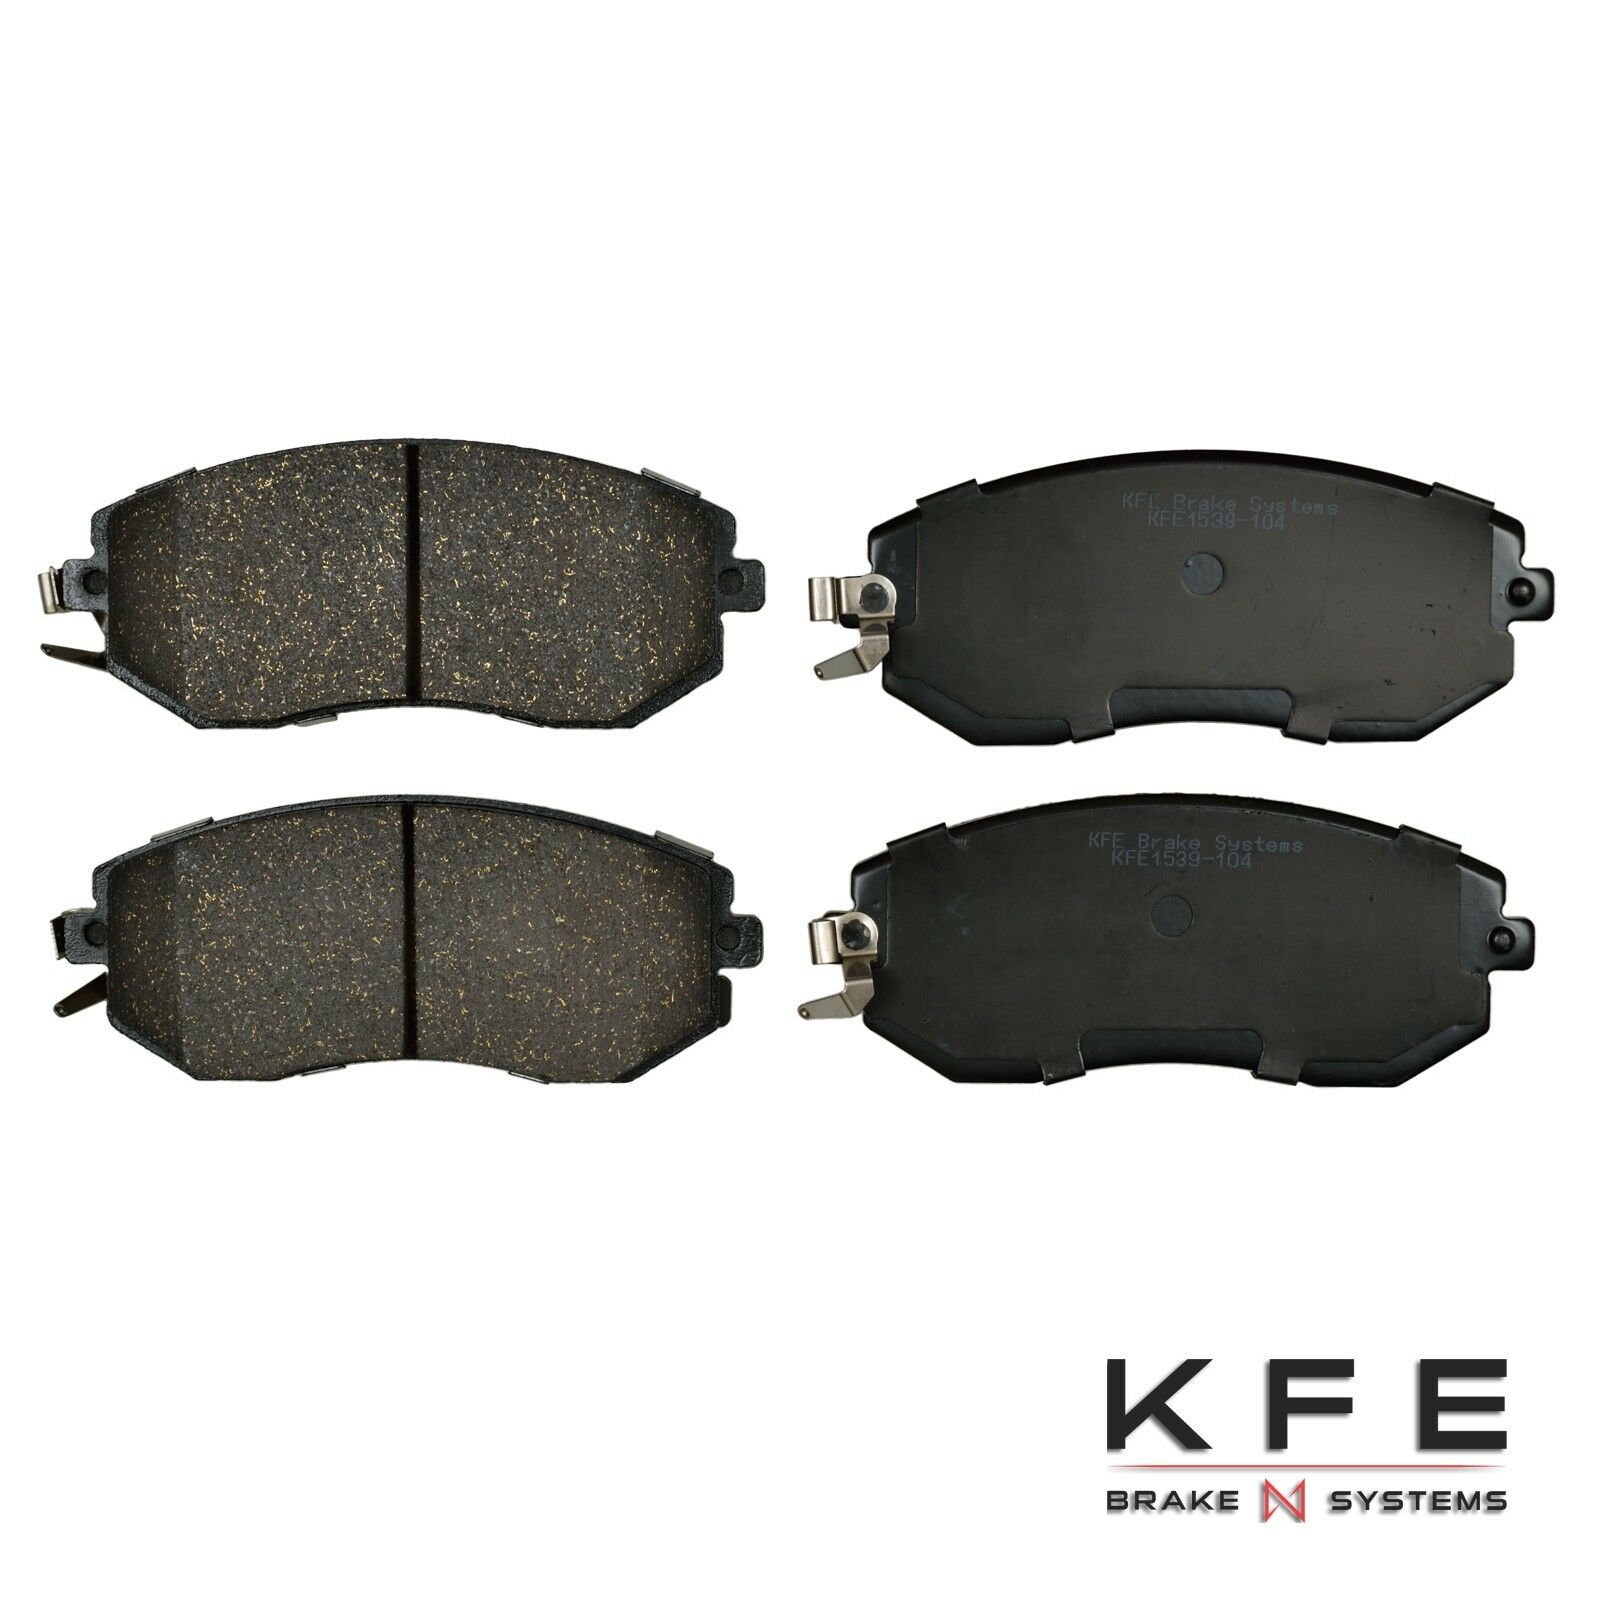 Ceramic Disc Brake Pad REAR Fits Crosstrek Forester Impreza Legacy Outback 1114